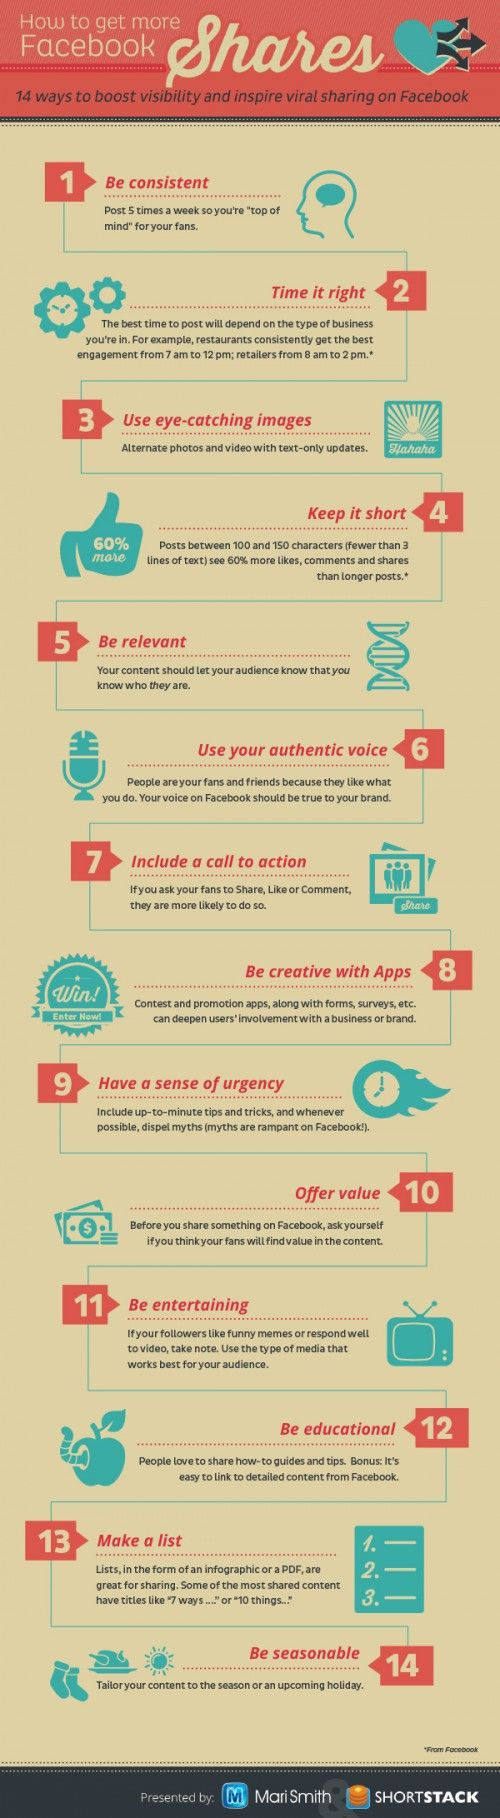 14 Ways To Boost Visibility & Inspire Sharing On #Facebook [infographic] #socialmedia